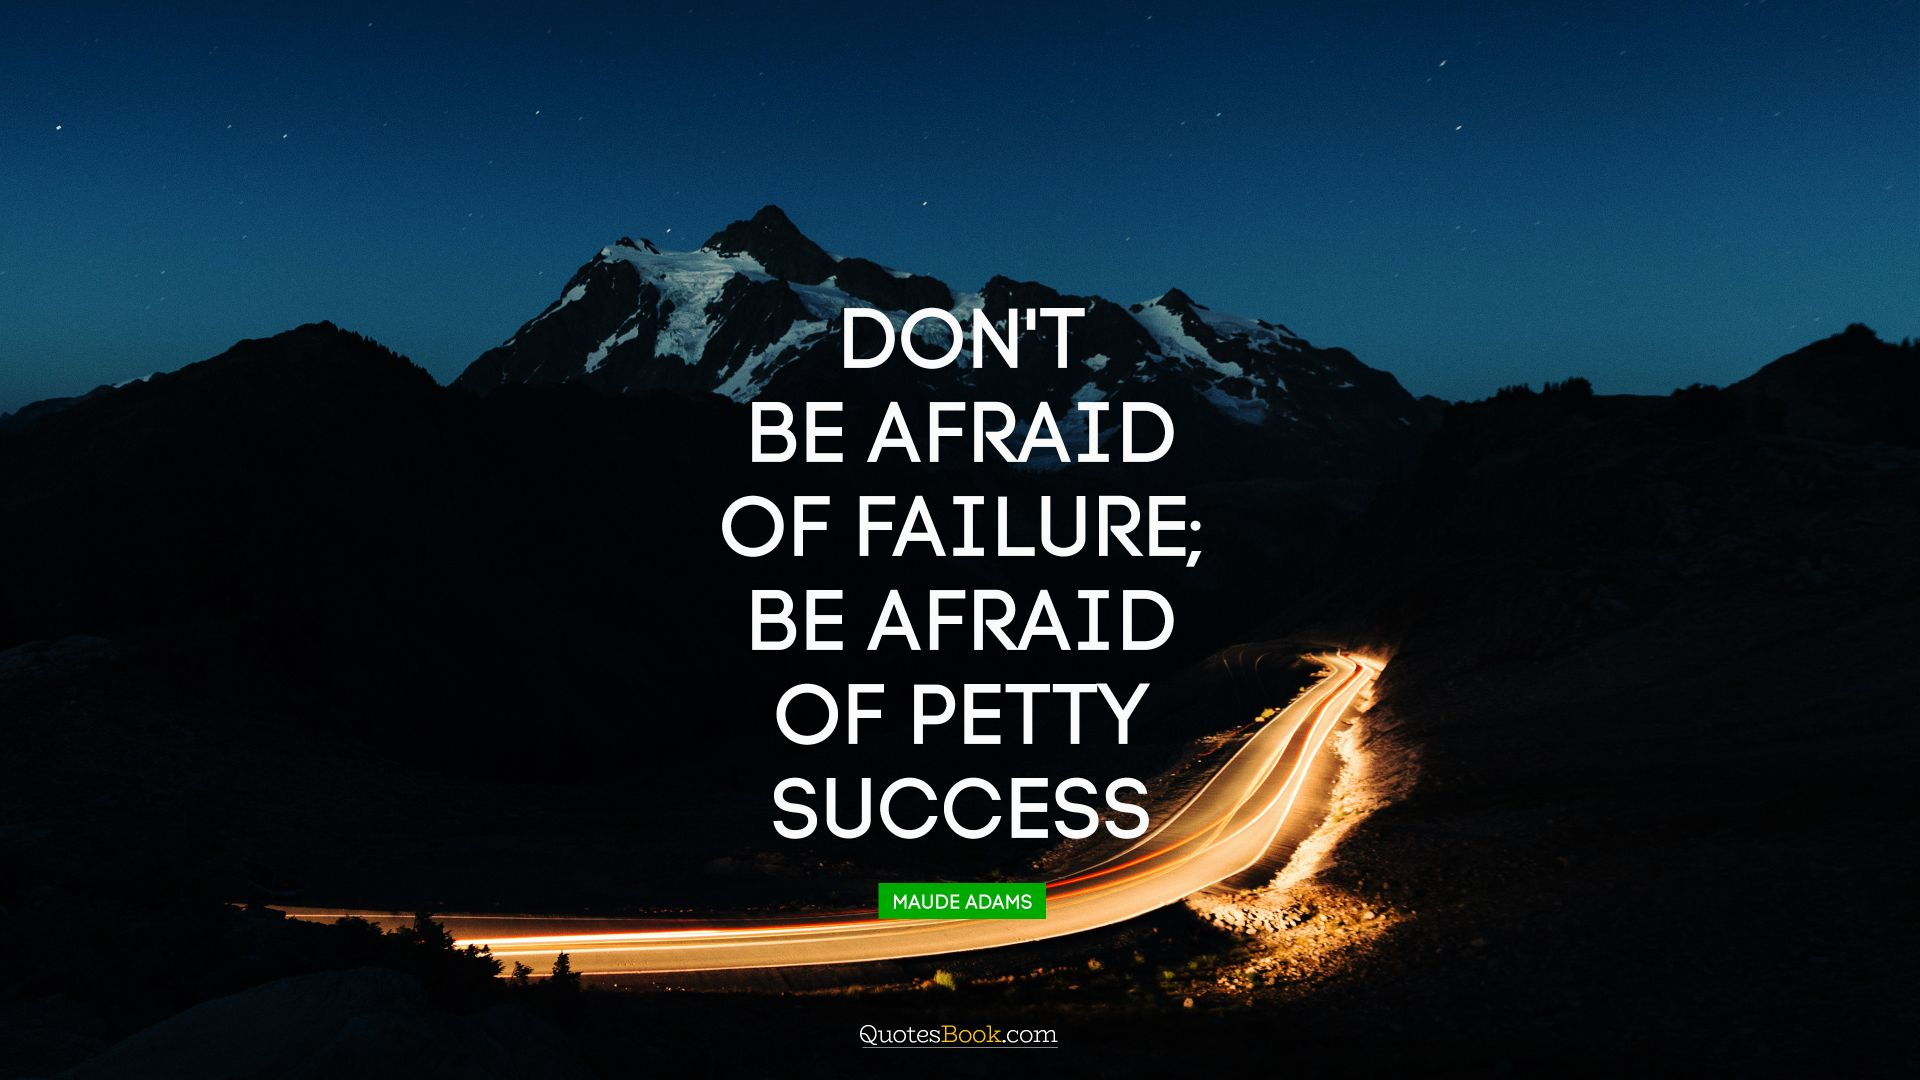 Don't be afraid of failure; be afraid of petty success. - Quote by Maude Adams